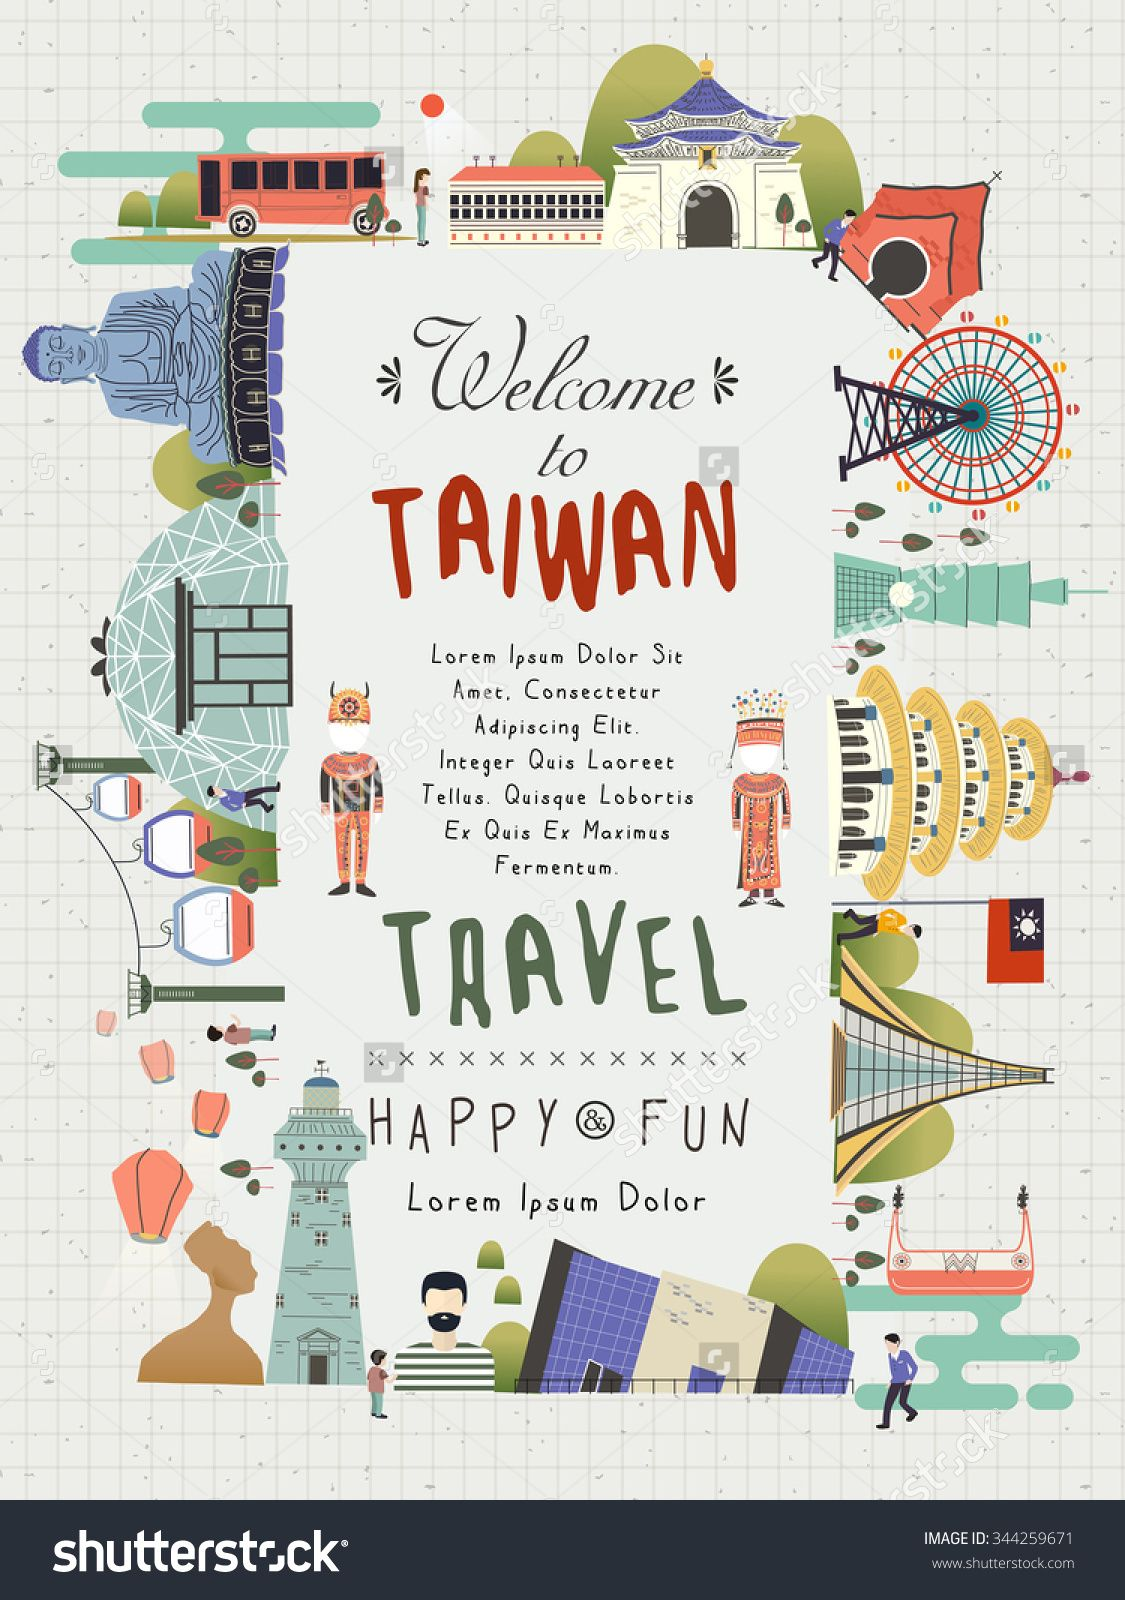 Korean poster design - Lovely Taiwan Travel Poster Design With Famous Attractions Stock Vector Illustration 344259671 Shutterstock